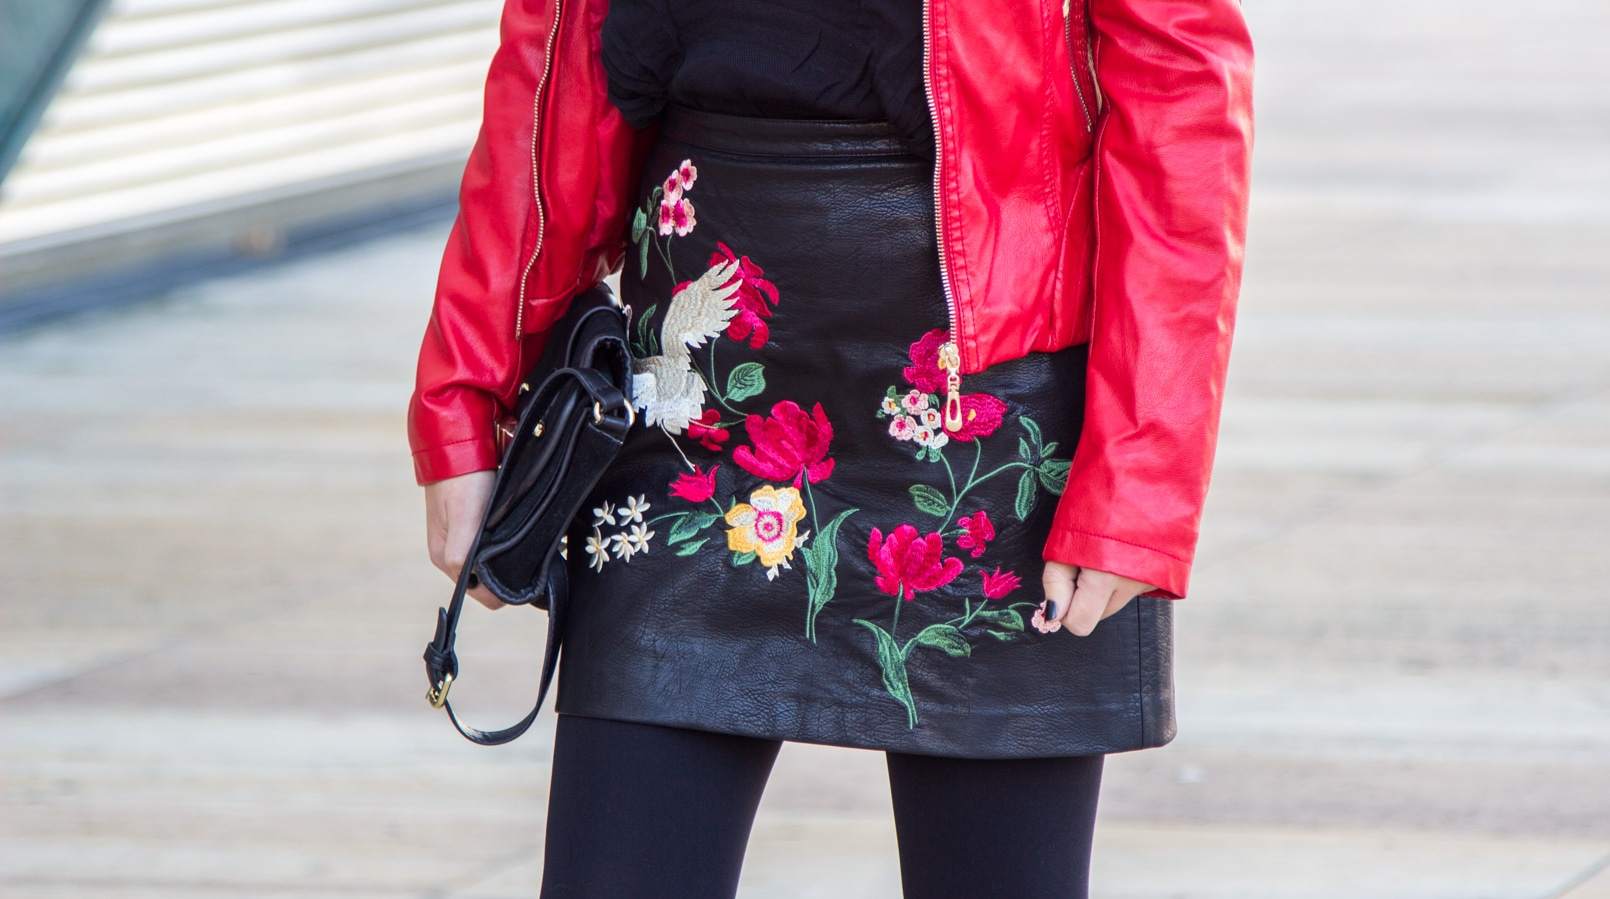 Le Fashionaire Let it be blogger catarine martins embroidered leather look flowers stradivarius skirt leather spikes red motor jacket old black gold zara clutch 9401F EN